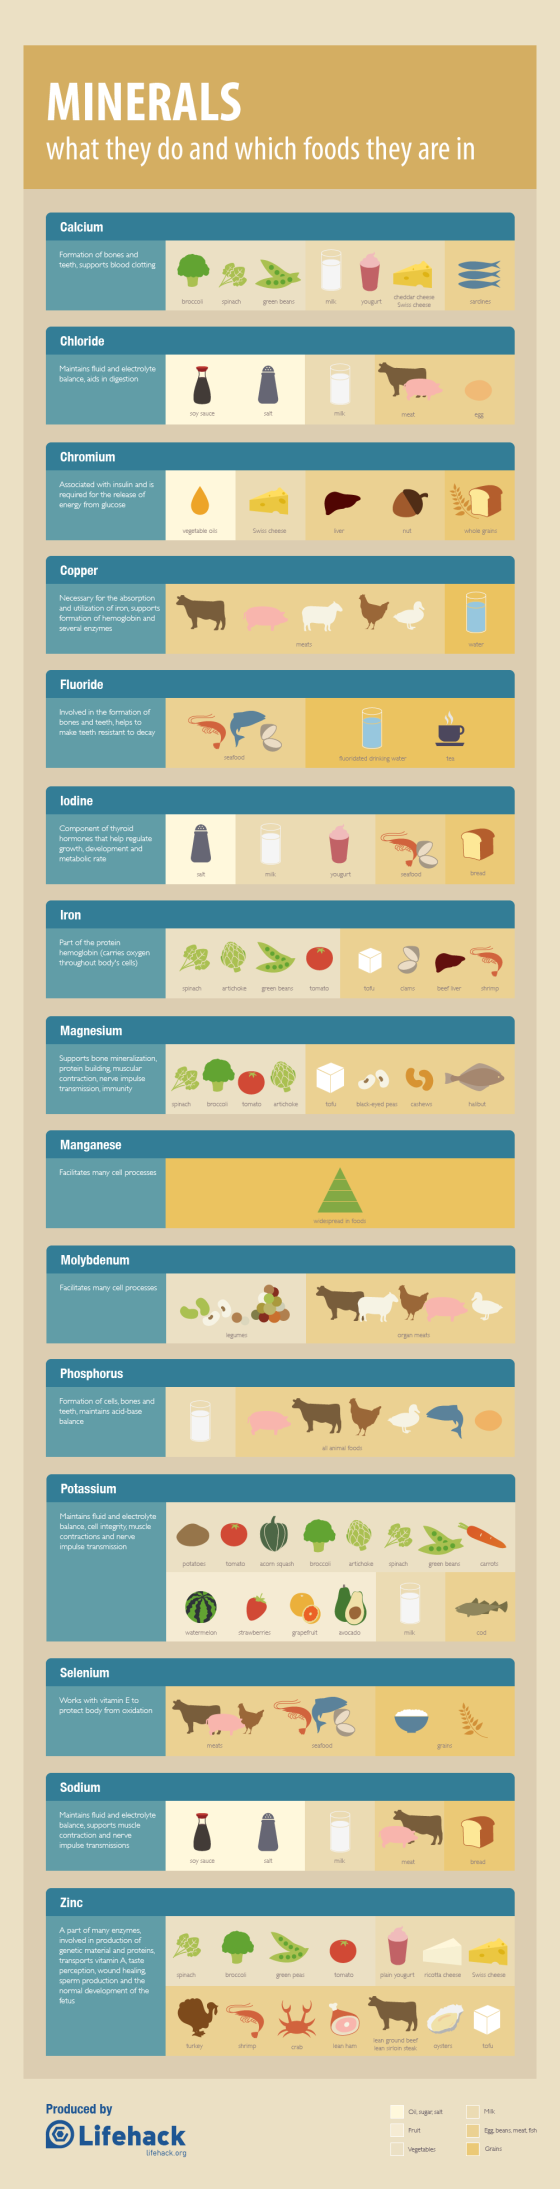 nutrition-minerals-cheat-sheet-food-sources_50cadd535f100